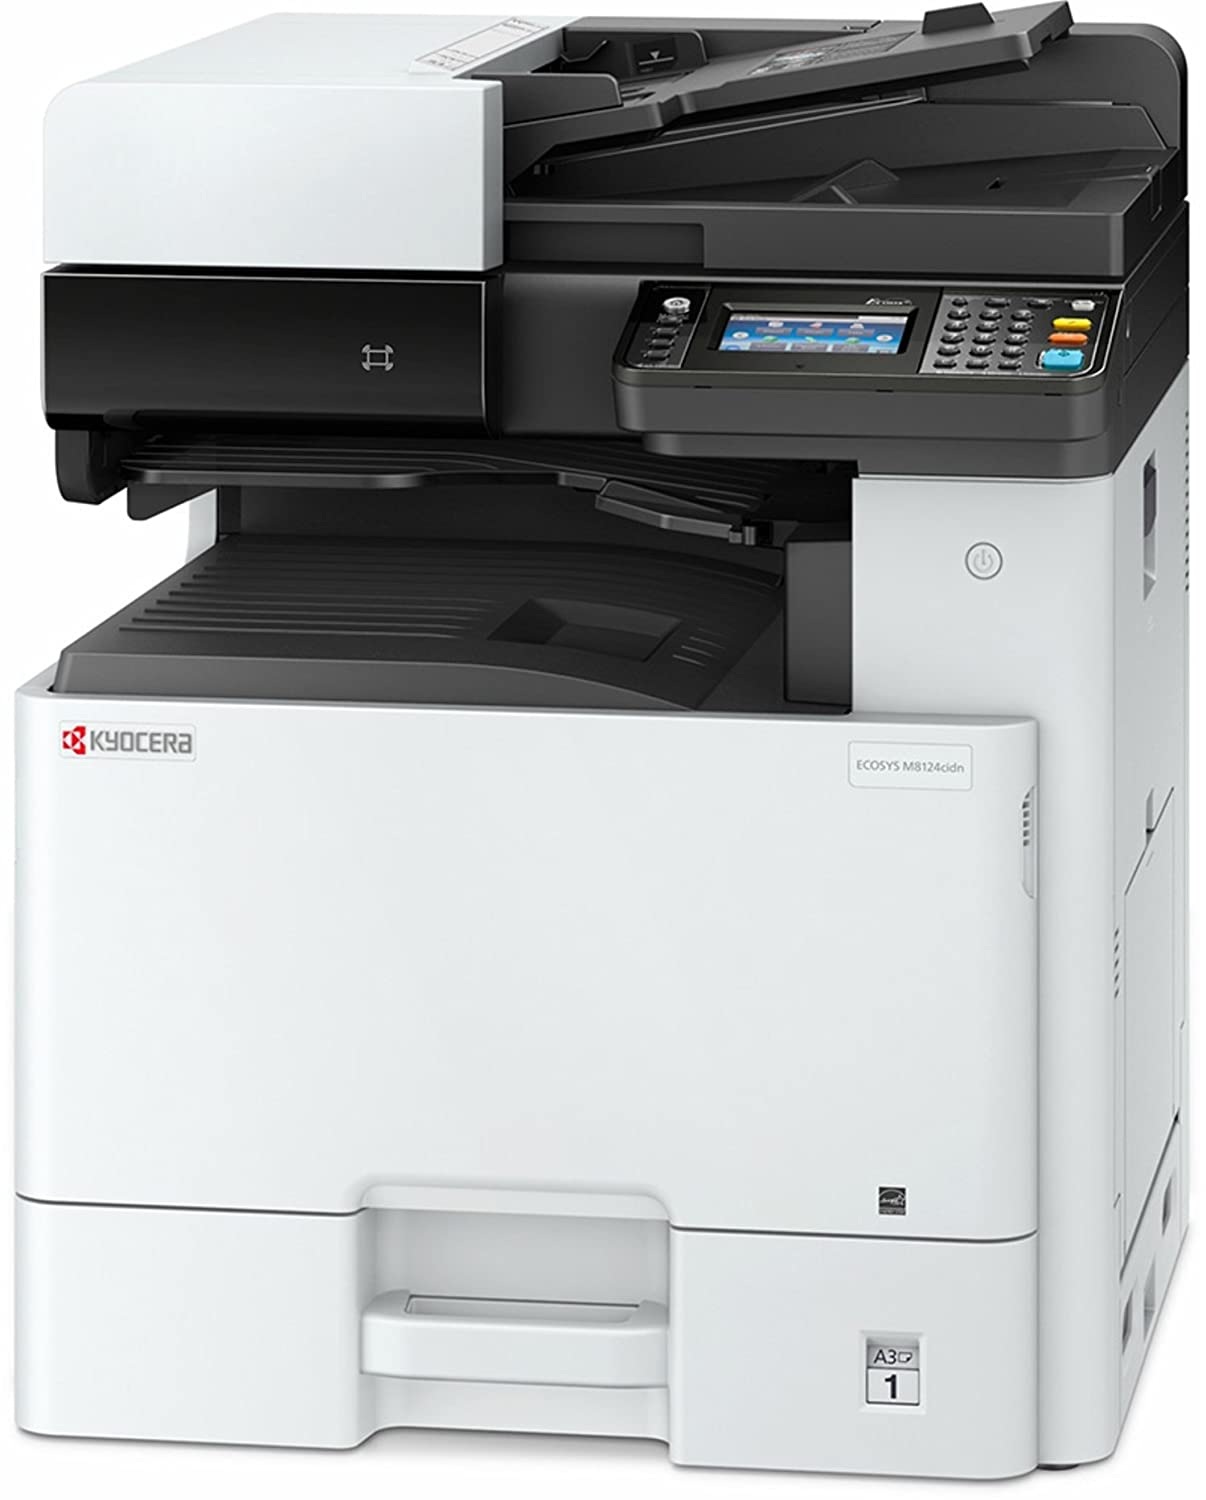 Amazon com: Kyocera 1102P42US0 Model ECOSYS M8124cidn Color A3 MFP